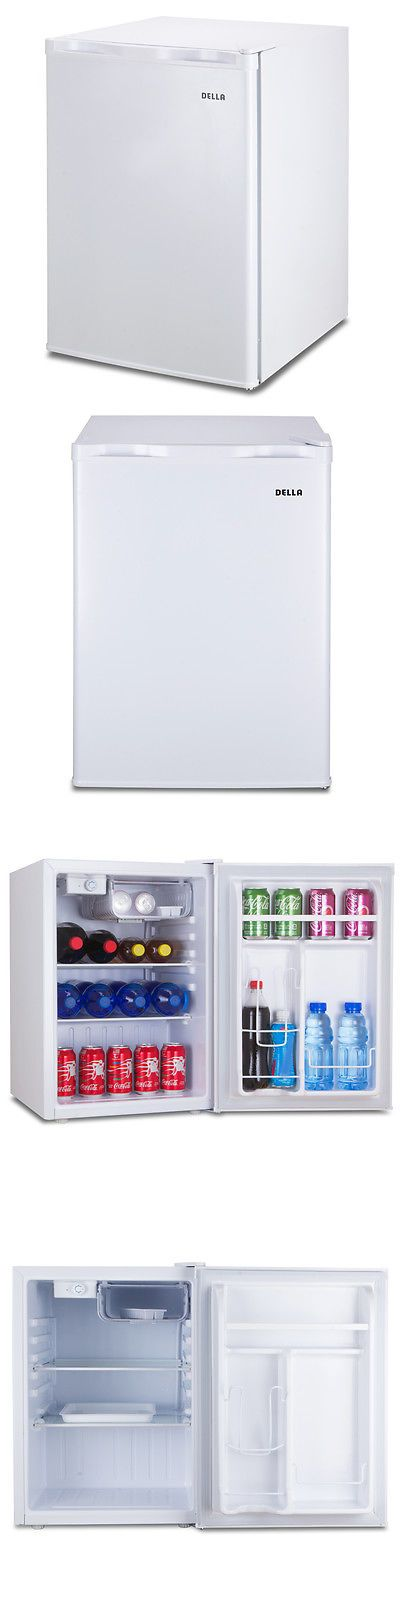 Other Refrigerators and Freezers 159920: Small Refrigerator Dorm Fridge 2.6 Cu Ft Office Compact Room Beer Cooler White -> BUY IT NOW ONLY: $119.99 on eBay!